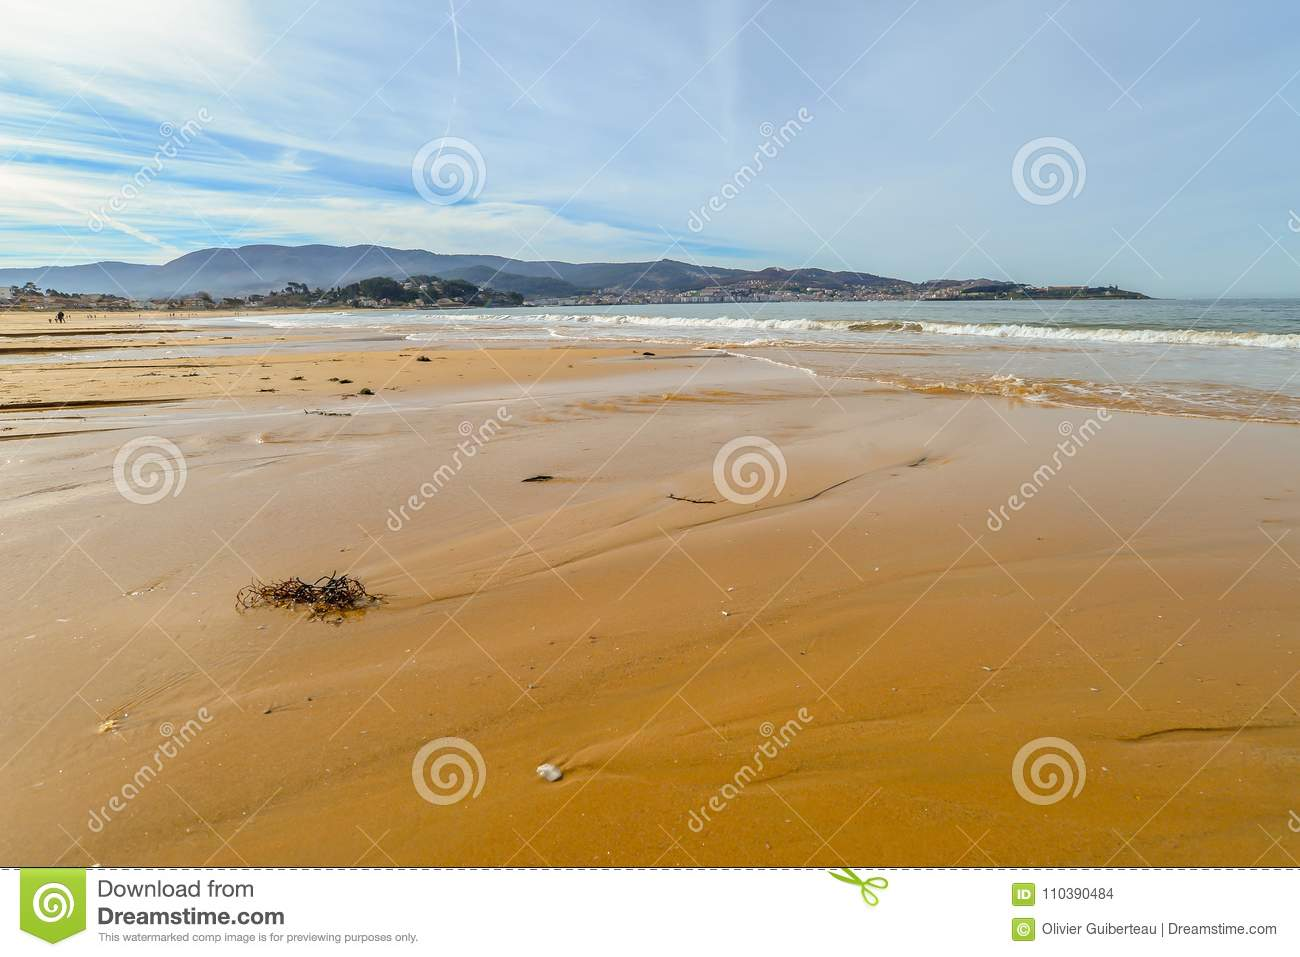 138 Nigran Photos Free Royalty Free Stock Photos From Dreamstime